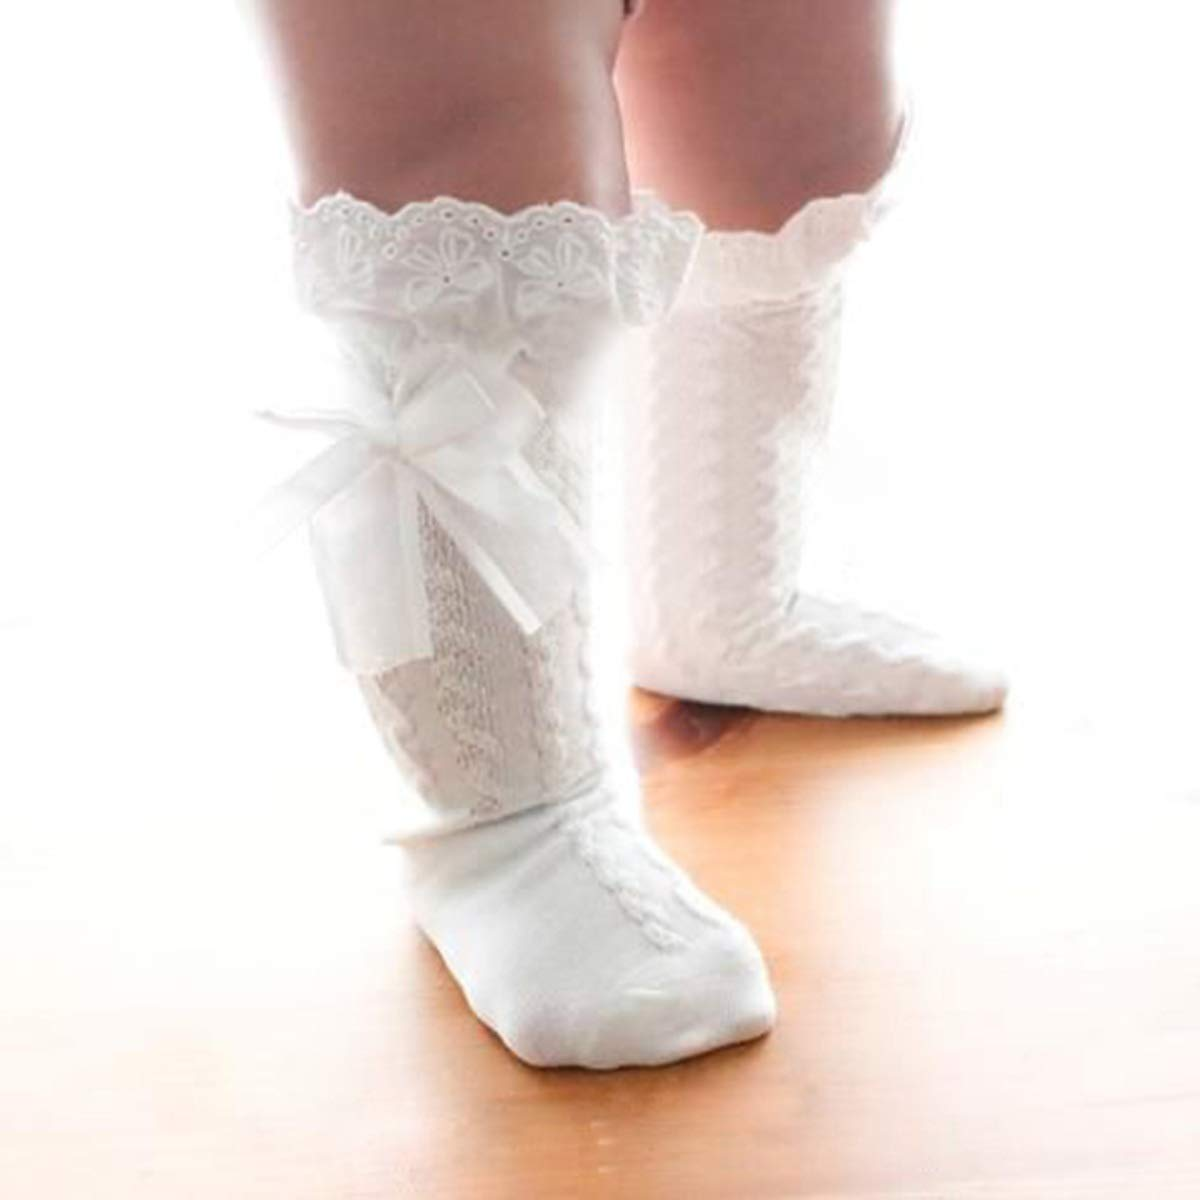 Soft Comfortable Cotton Socks for Infant Toddler Aisheny 4 Pairs Baby Girls Lace Lining Socks Size : 2-4T